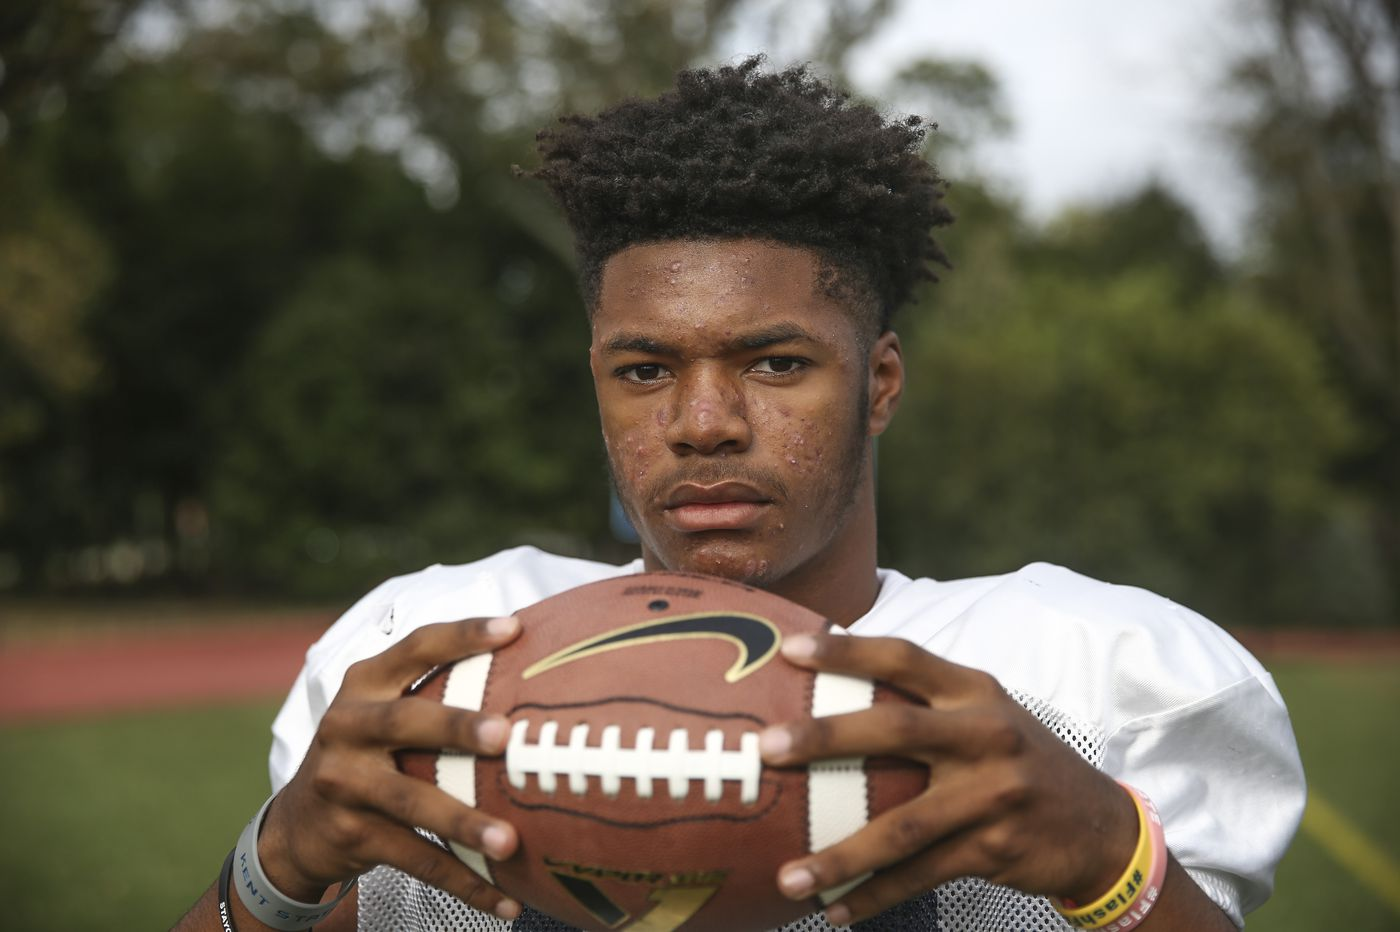 Ke'Shawn Williams has Springside Chestnut Hill football team off to fast start